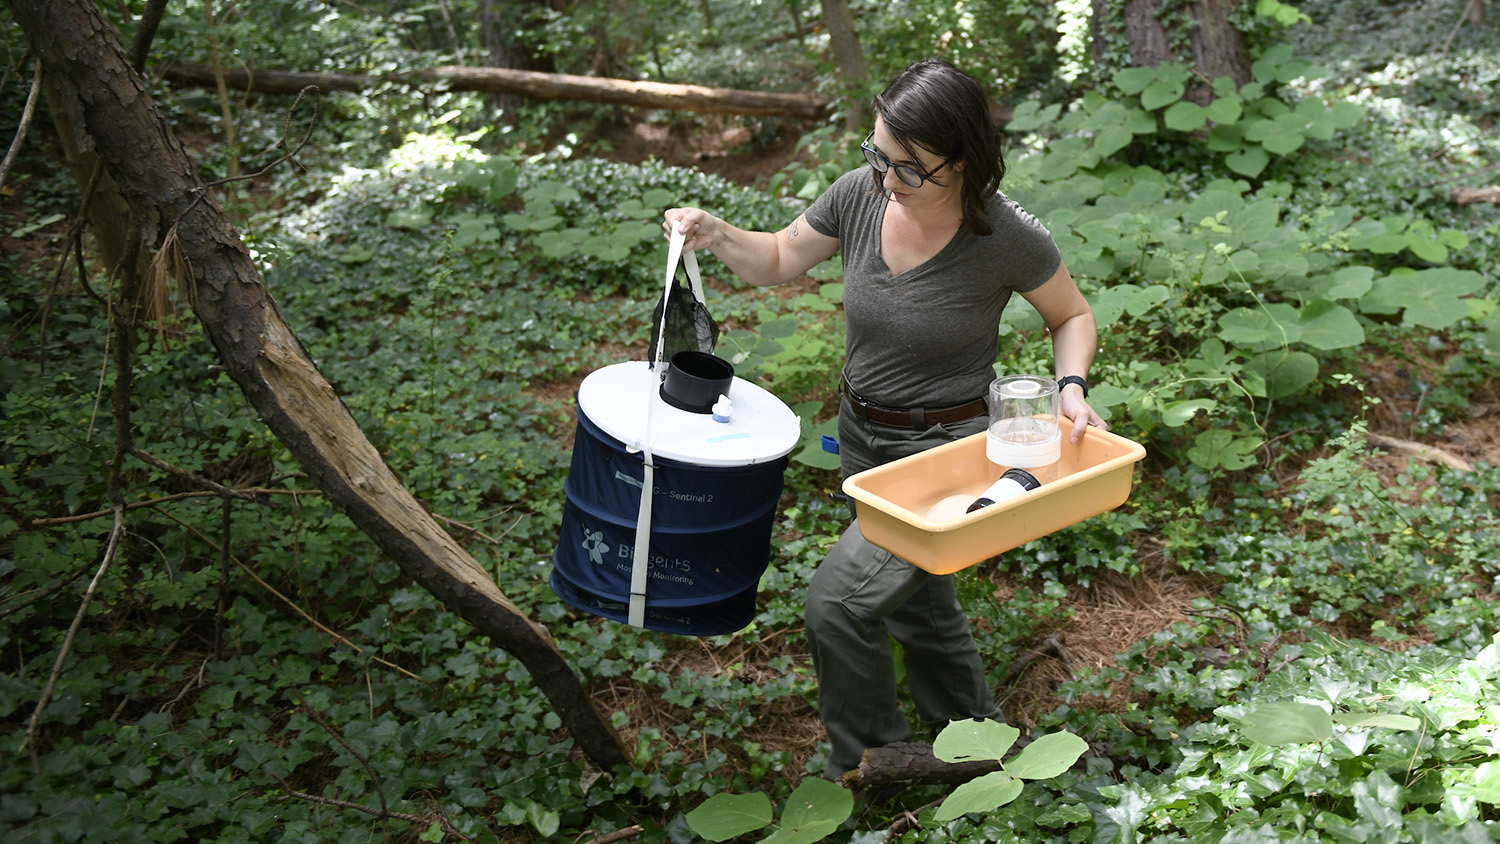 A student conducts research in a forest